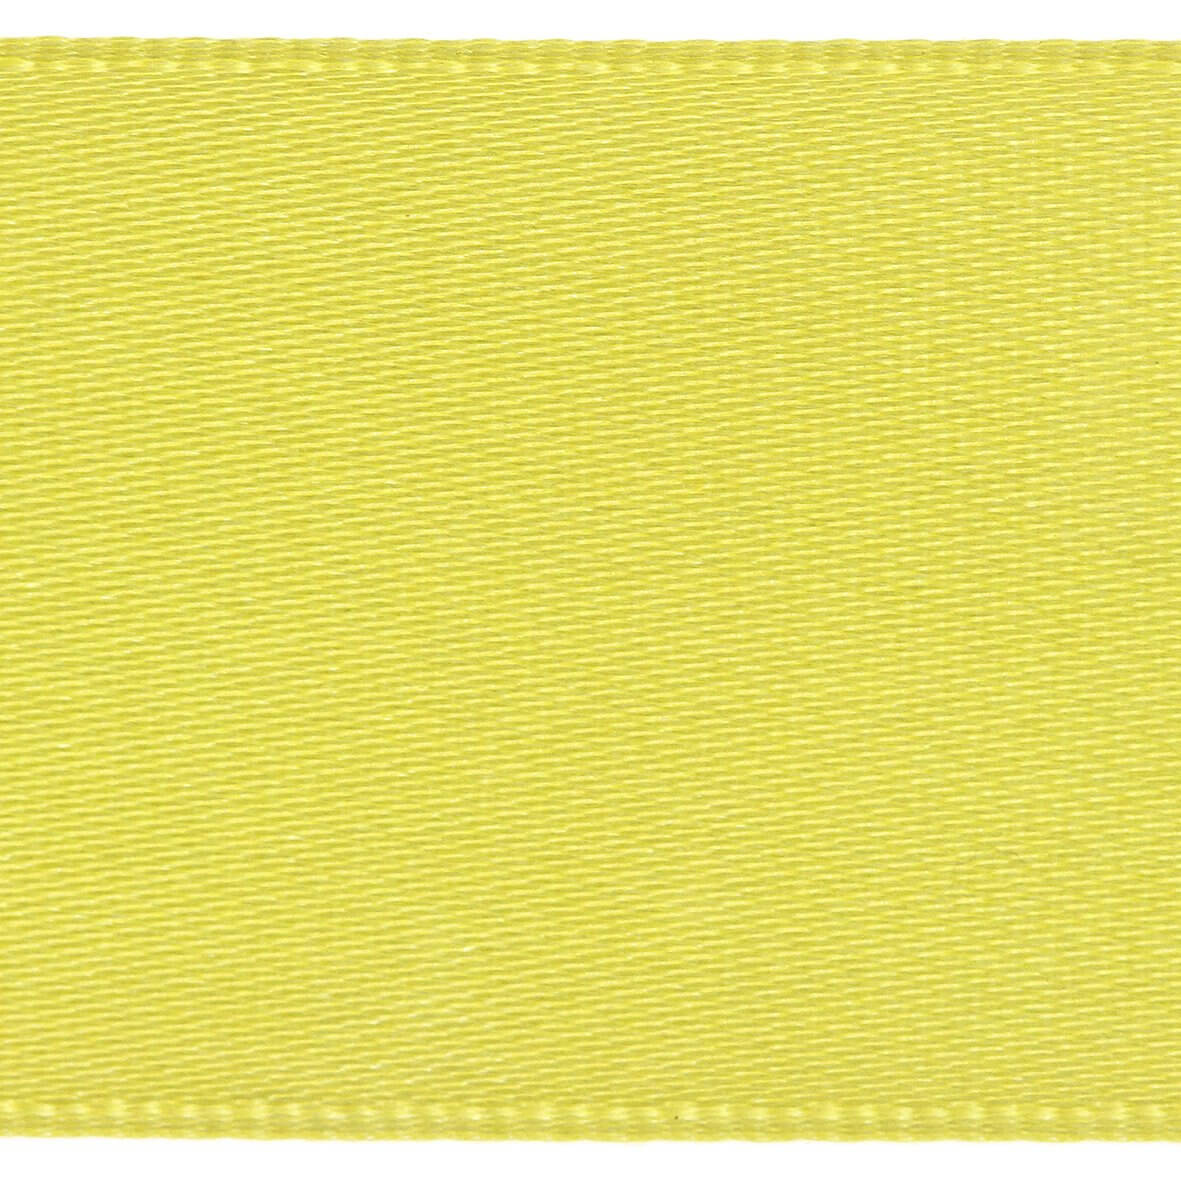 10mm Berisfords Satin Ribbon - Yellow Colour 679